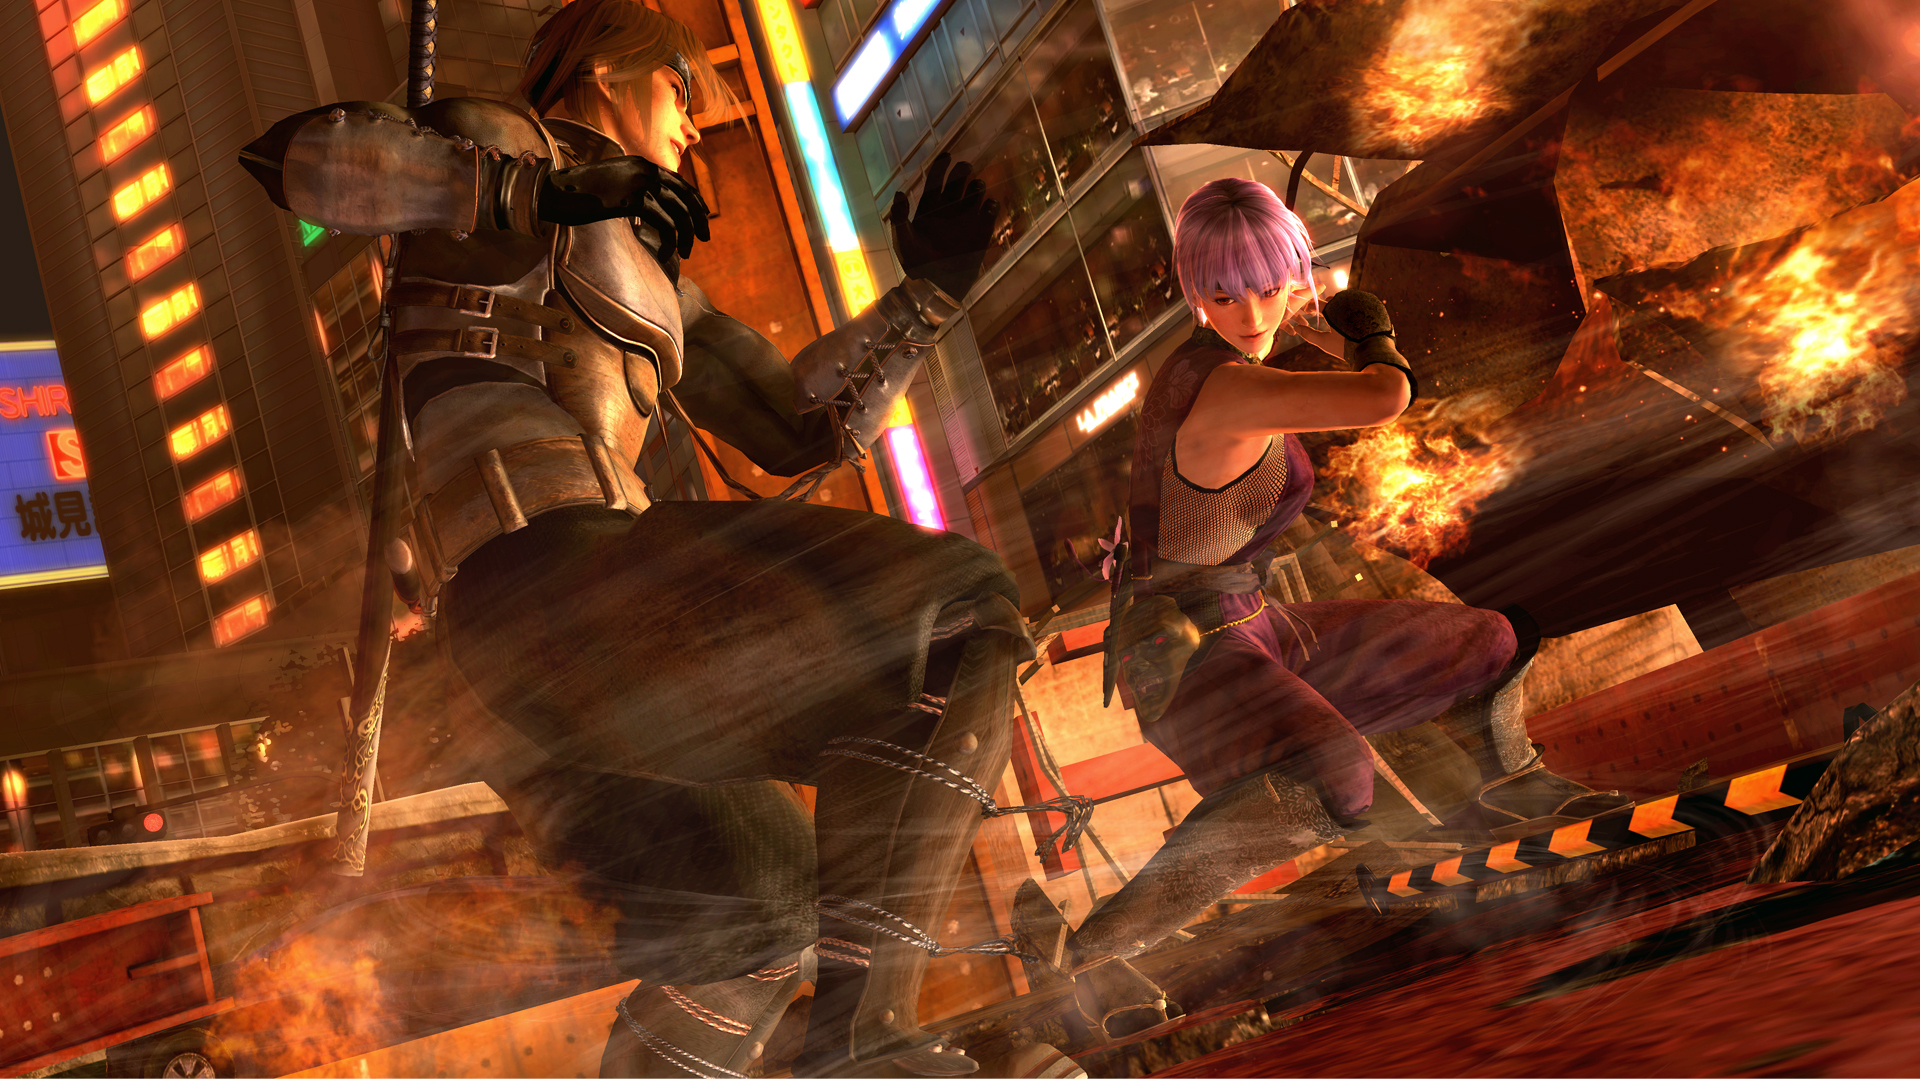 DEAD OR ALIVE® 5 Last Round (KOEI TECMO GAMES CO., LTD.) (ENG|MULTi) [L]  [2015] [Fighting Games]